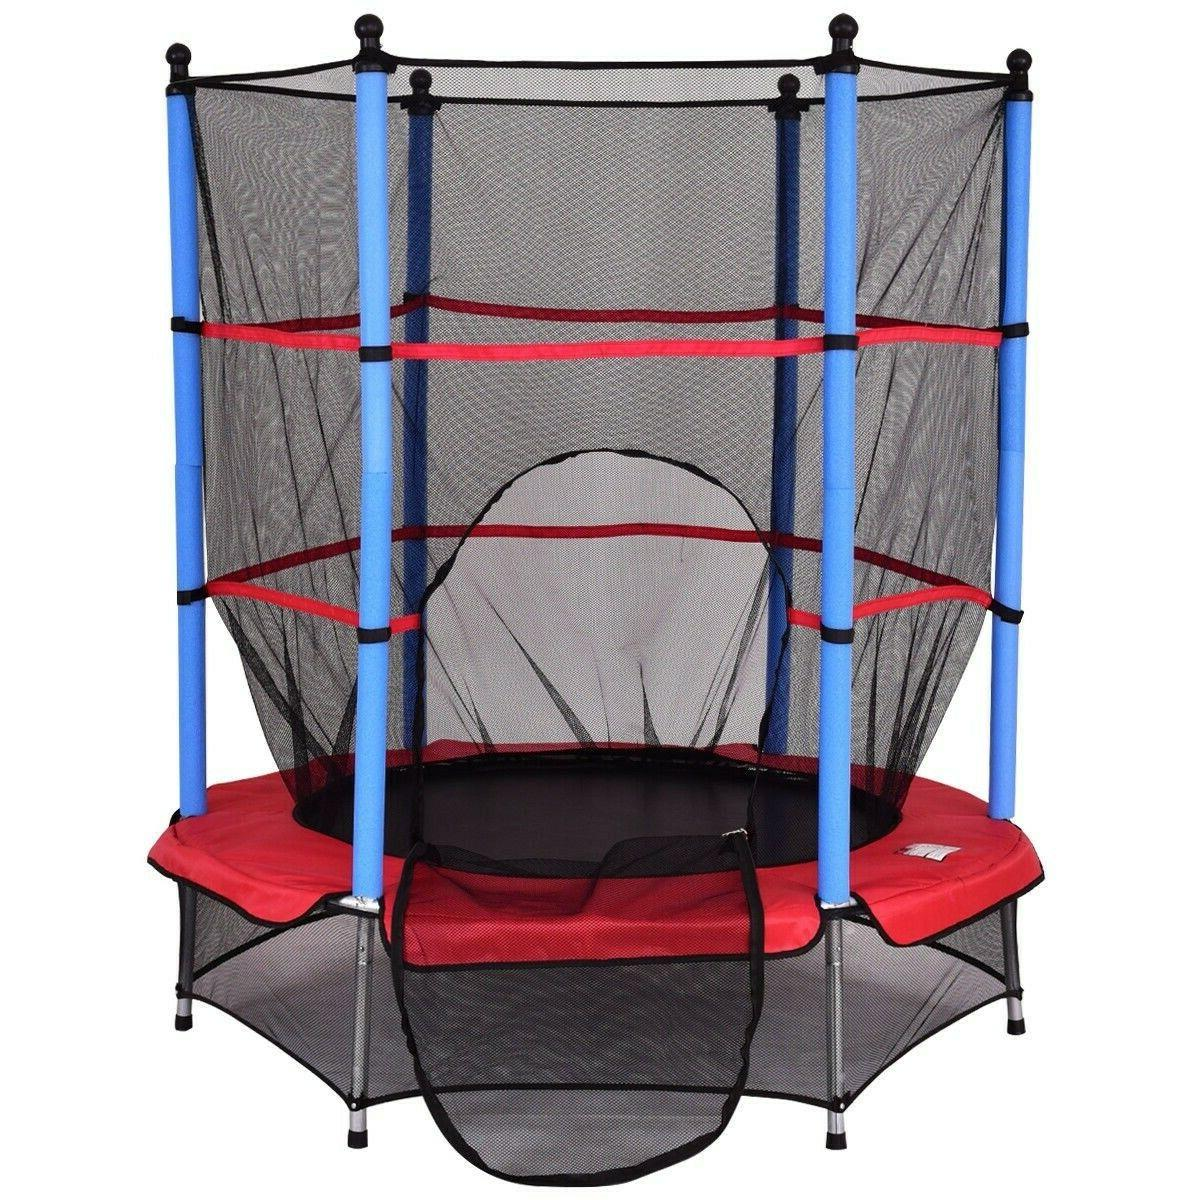 Jumping Trampoline Children Play Safety Pad Enclosure Combo